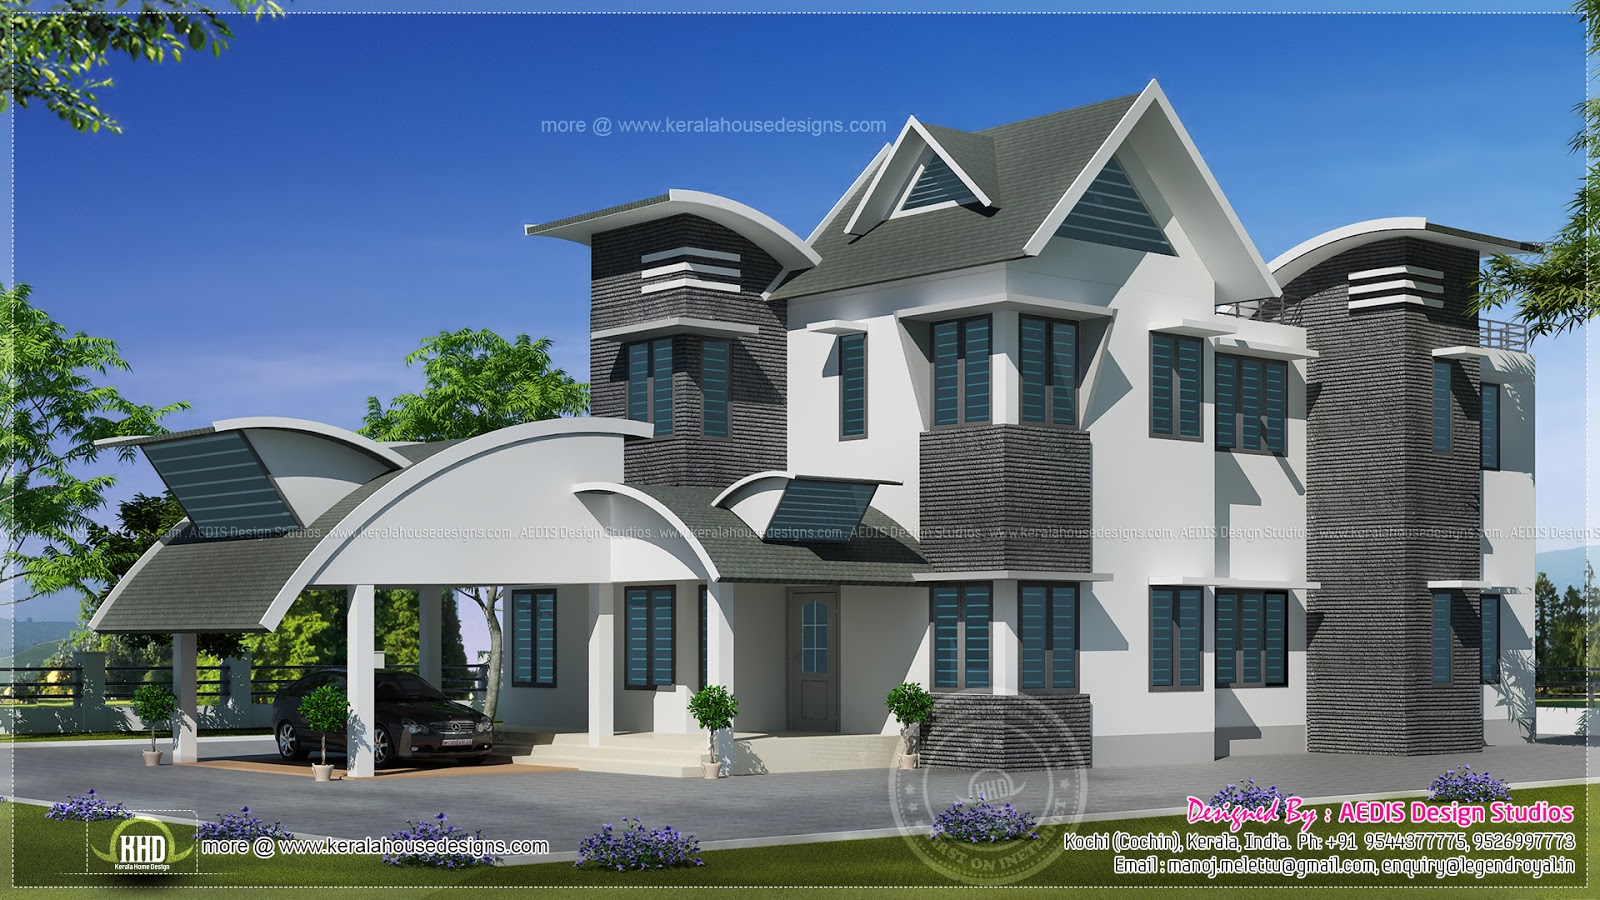 Awesome 90 unique homes designs design inspiration of 28 for Unusual house plans